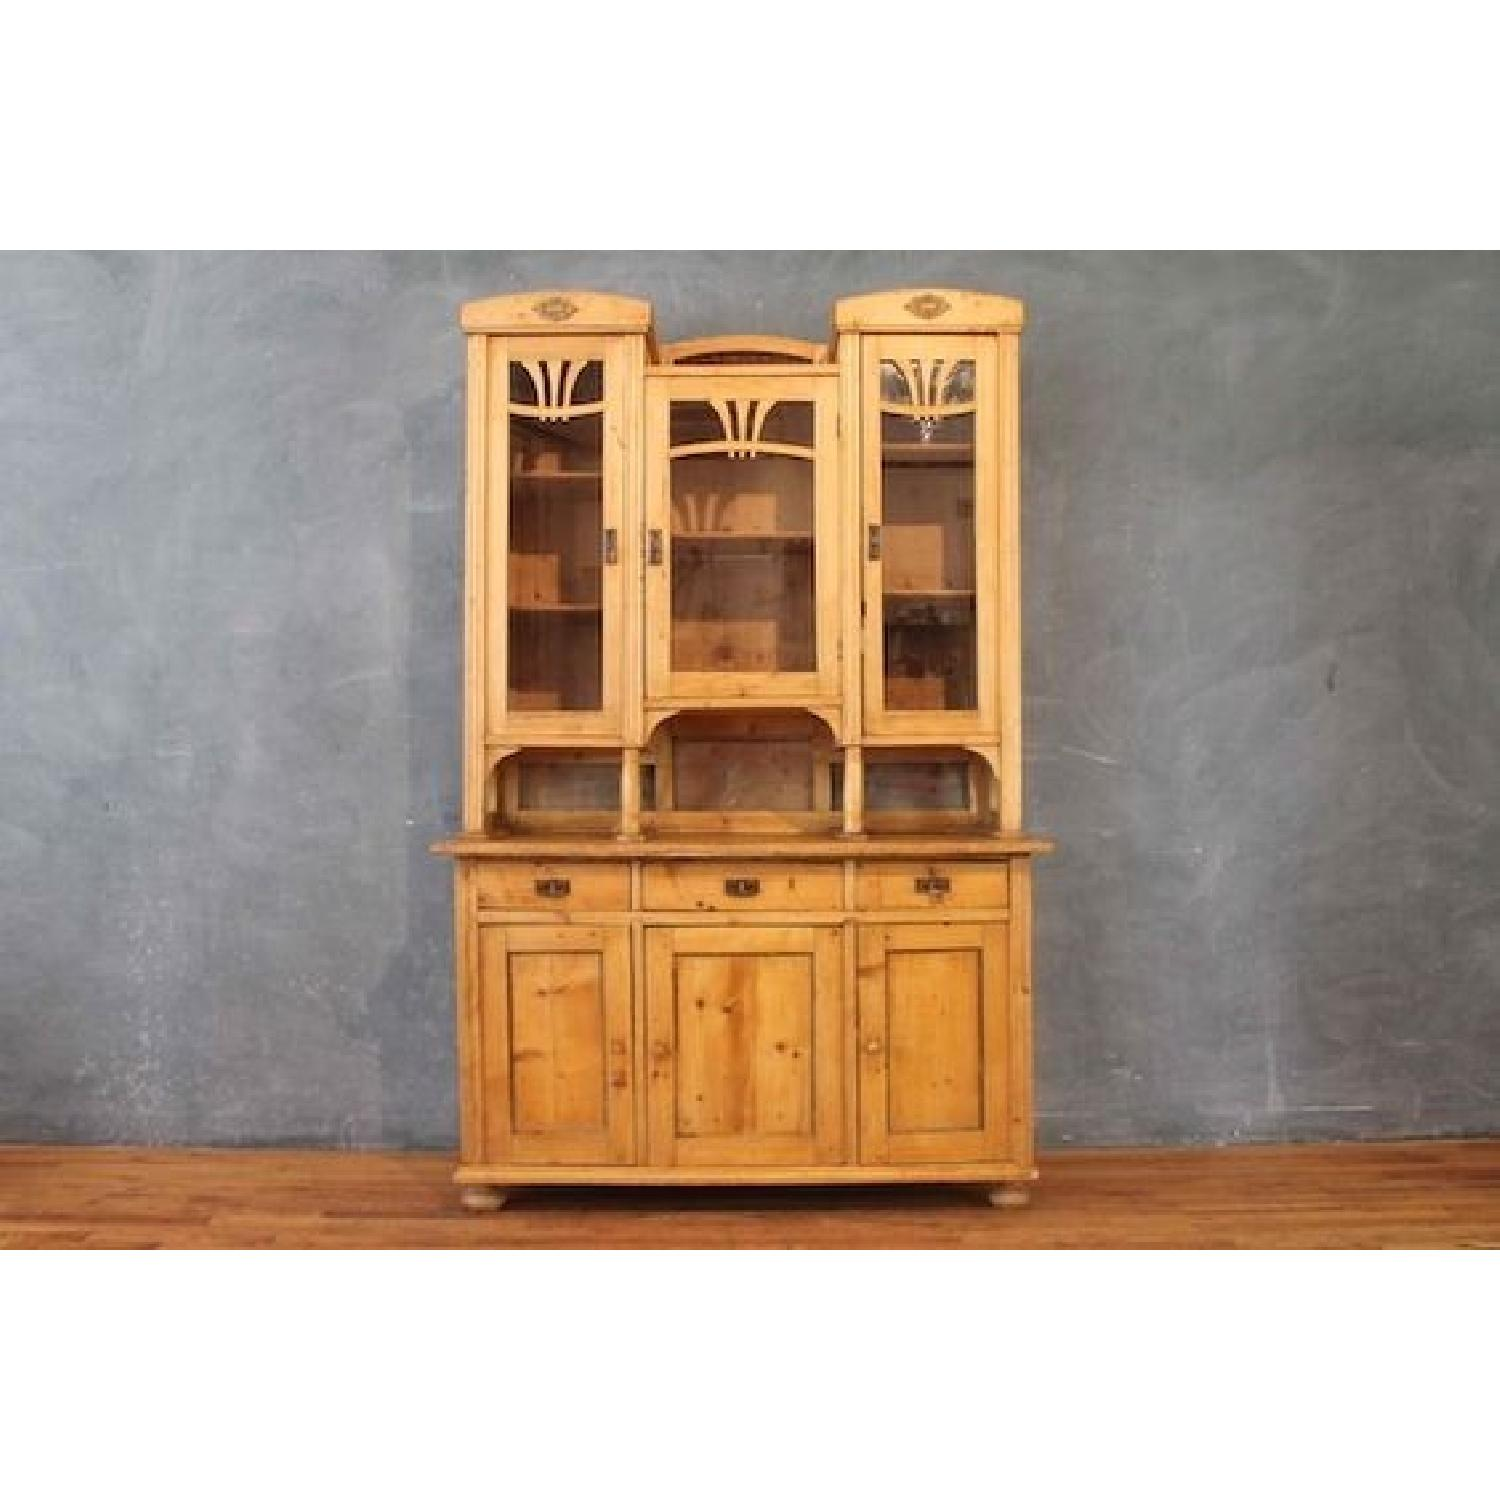 Country Pine Cabinet w/ Glass Door Hutch - image-1